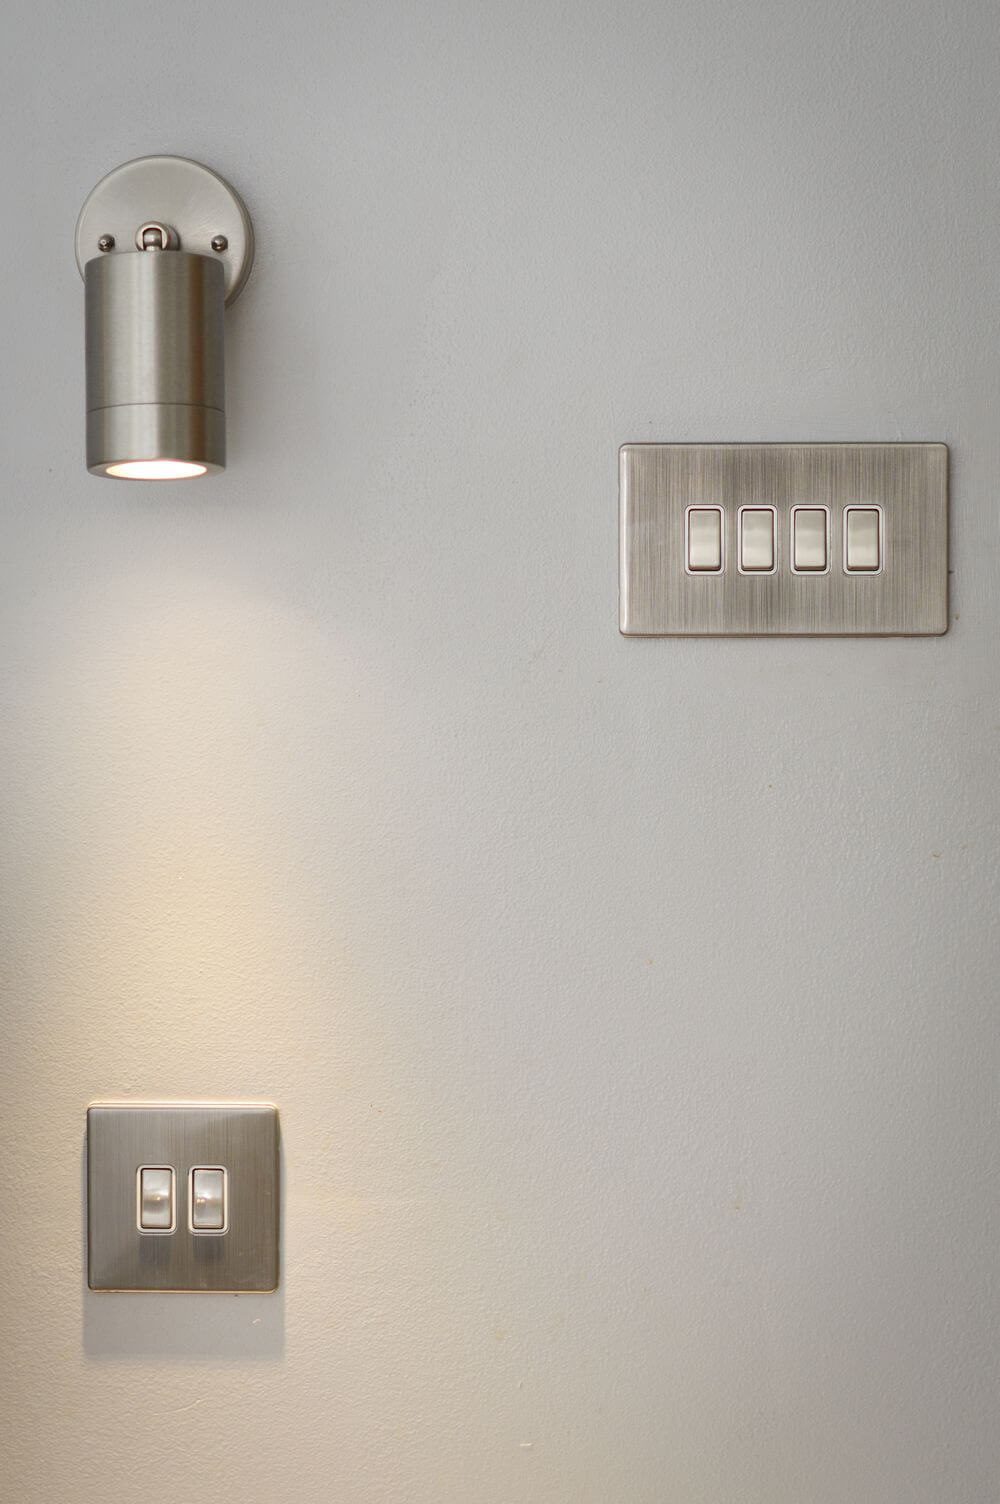 sockets-fitted-by-o'briens-electrical (2)